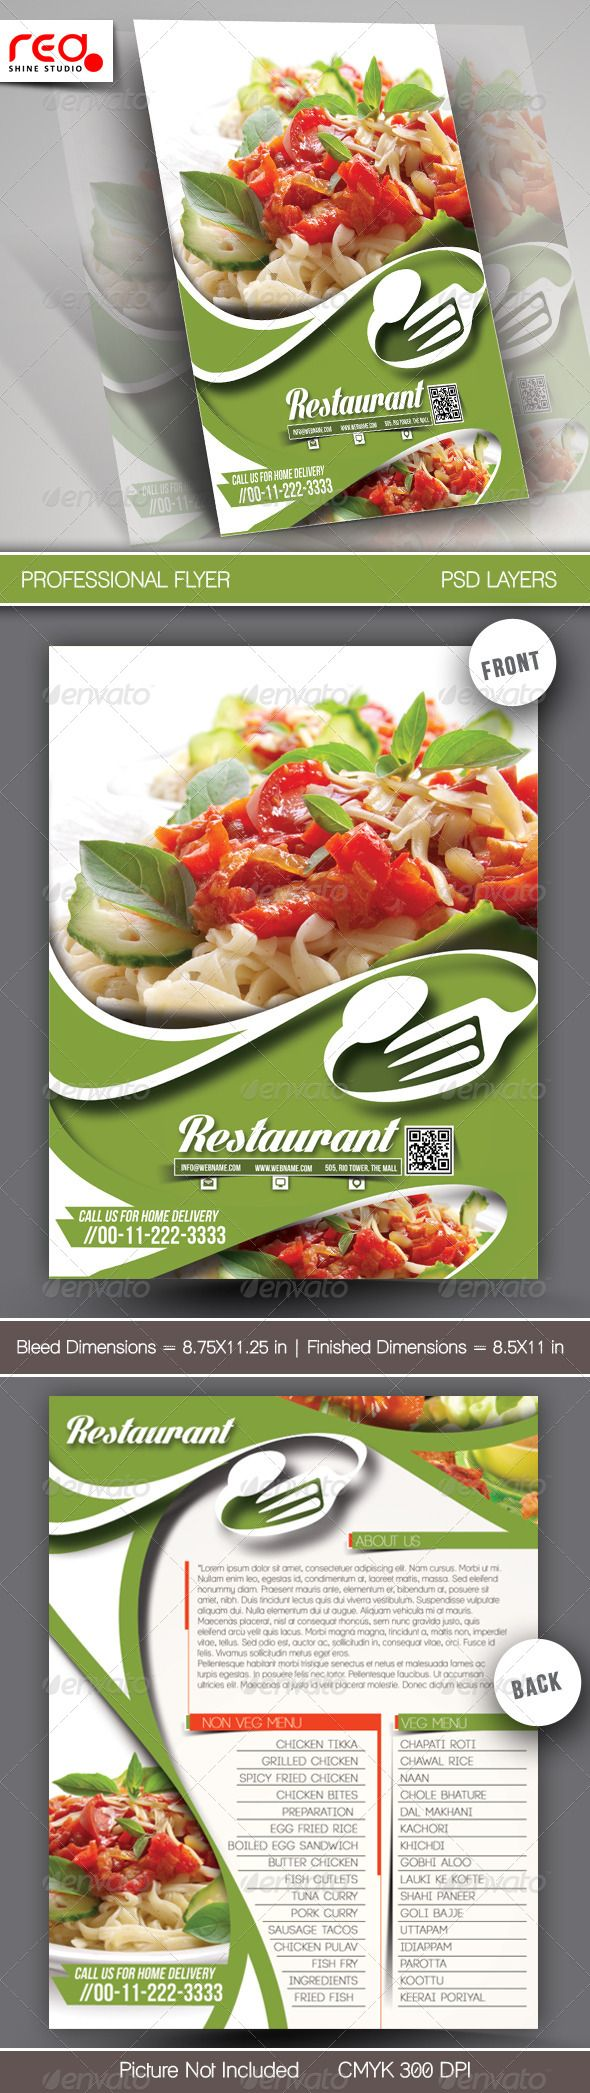 Restaurant Flyer & Menu Card Template #design #speisekarte Download: http://graphicriver.net/item/restaurant-flyer-menu-card-template/7431266?ref=ksioks